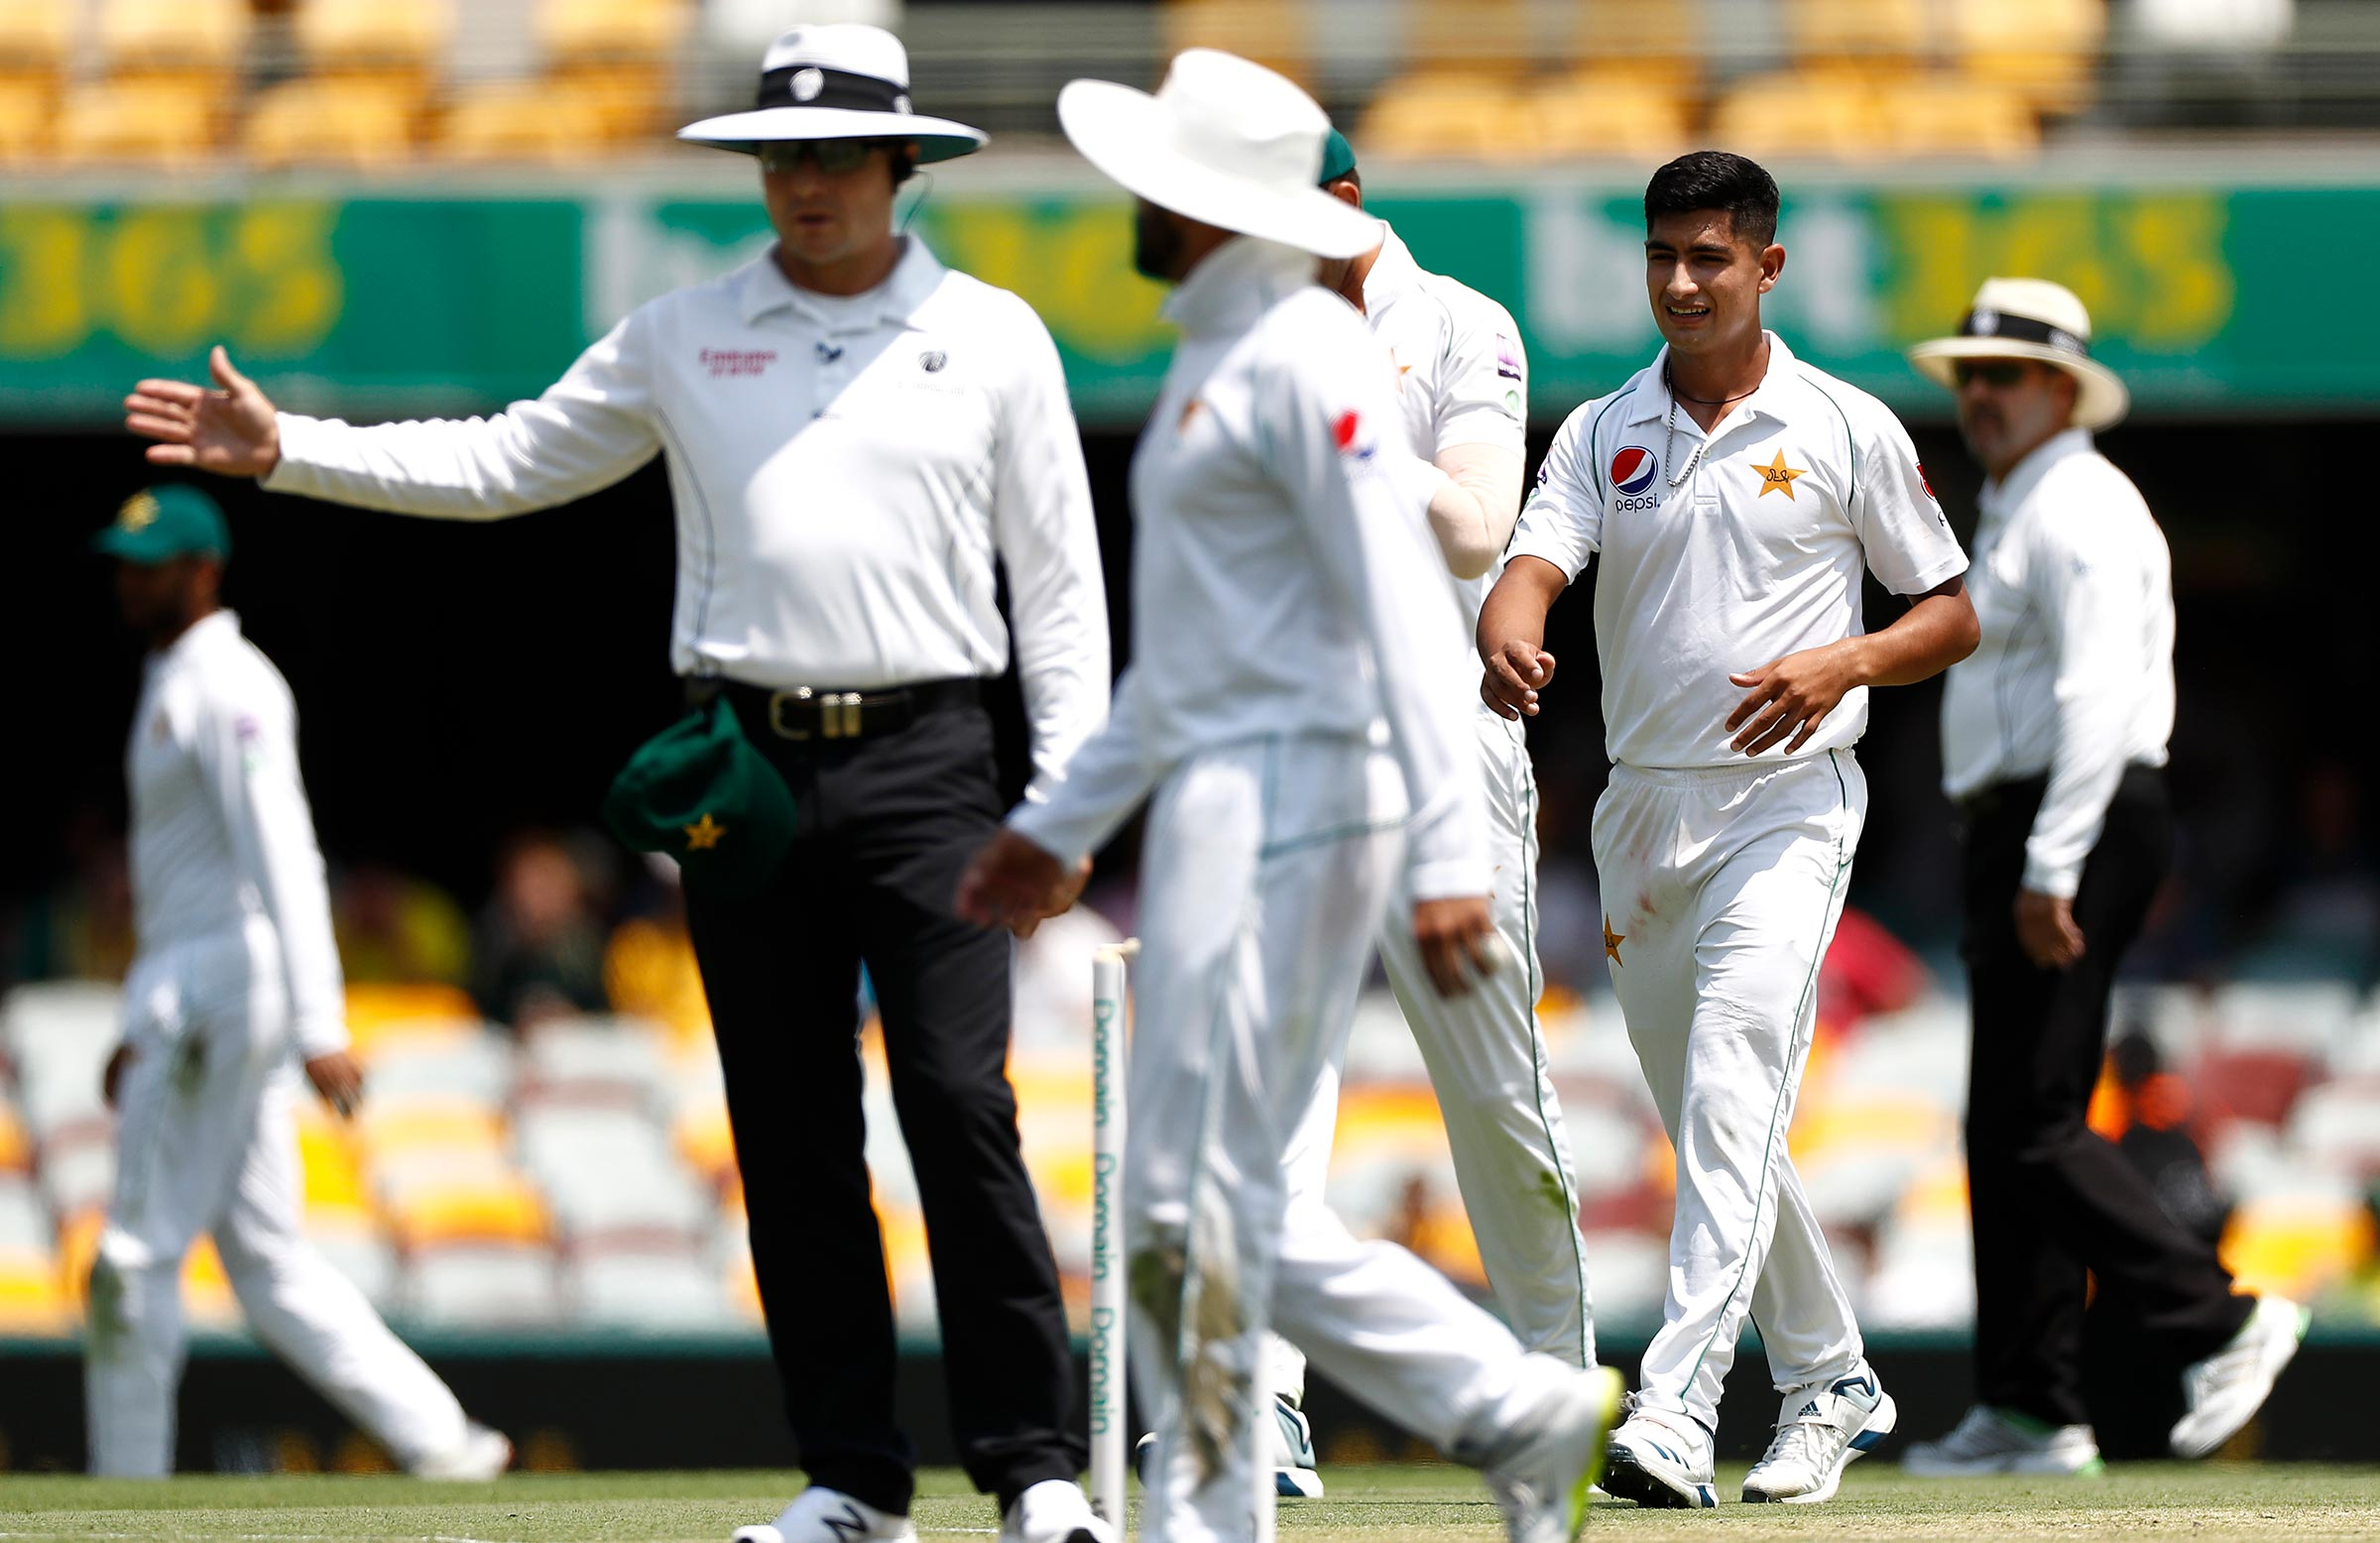 Naseem was cost a first Test wicket by a no-ball at the Gabba // Getty